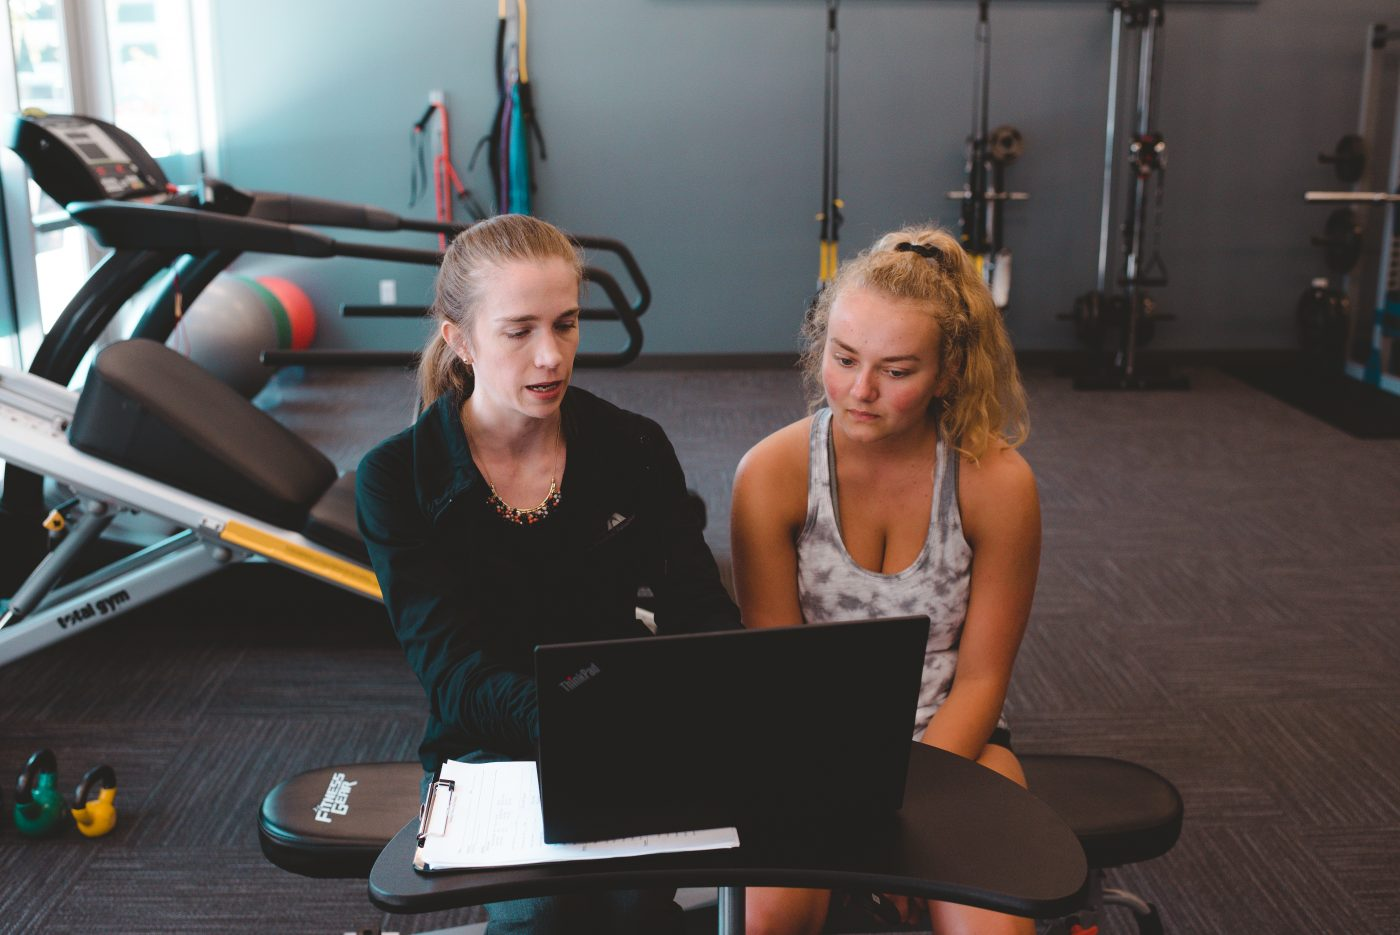 athlete working with therapist by computer